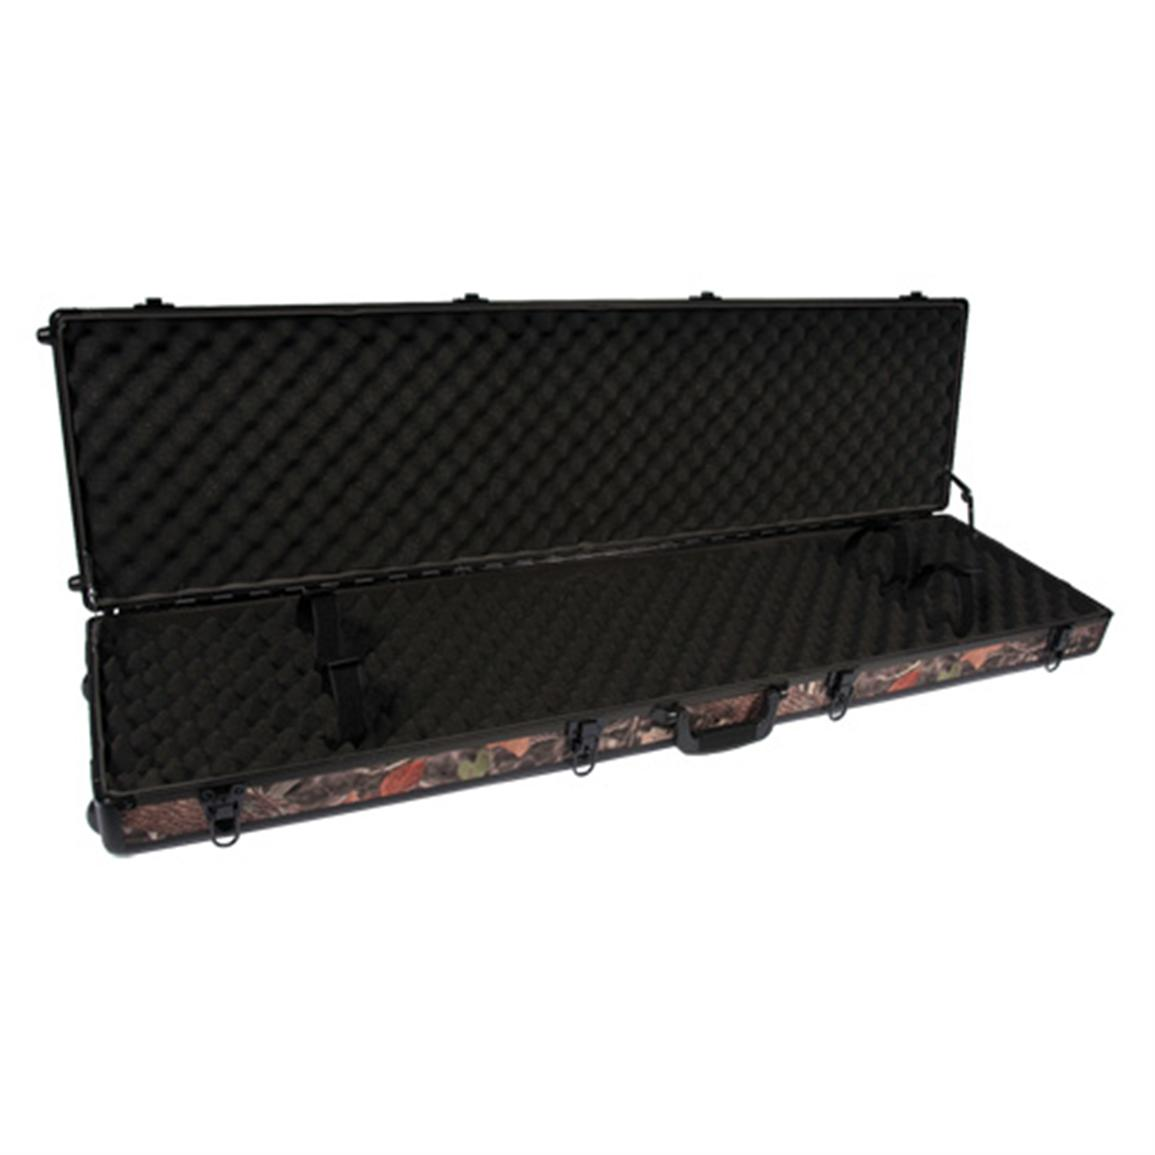 SportLock® CamoLock Double Rifle Case with Wheels